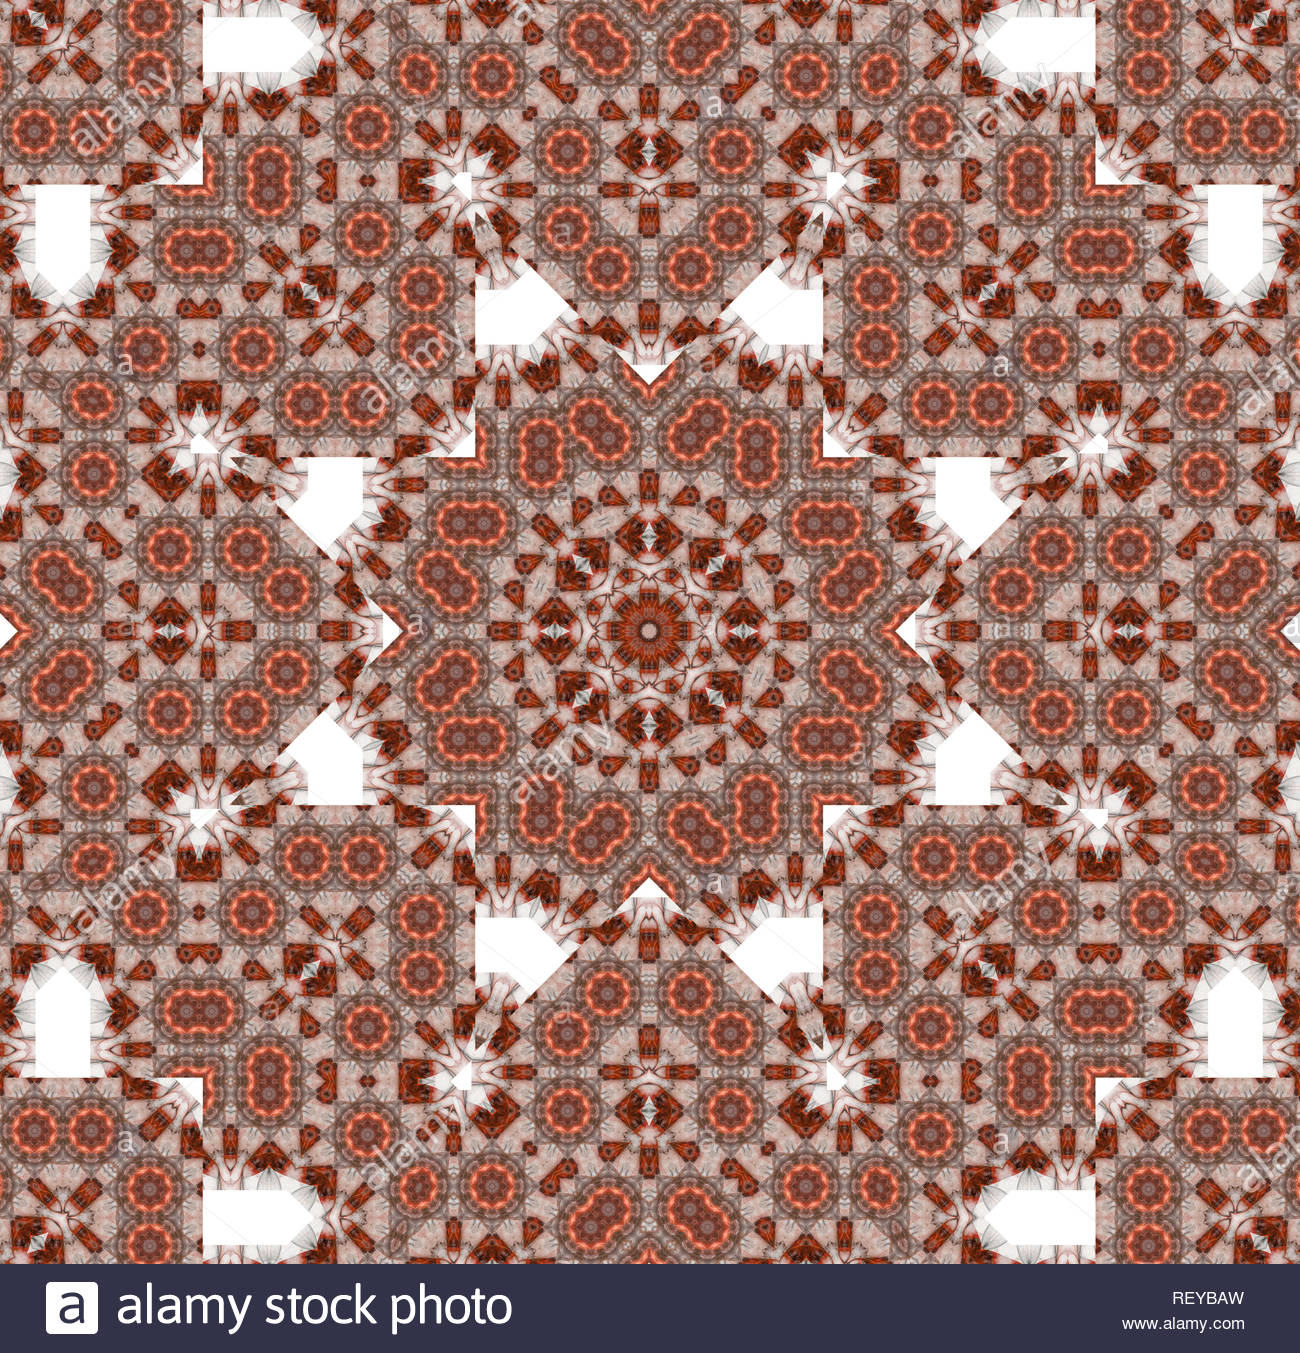 Ornaments generated by computer as a symmetrical background. Multicolor texture. Stock Photo